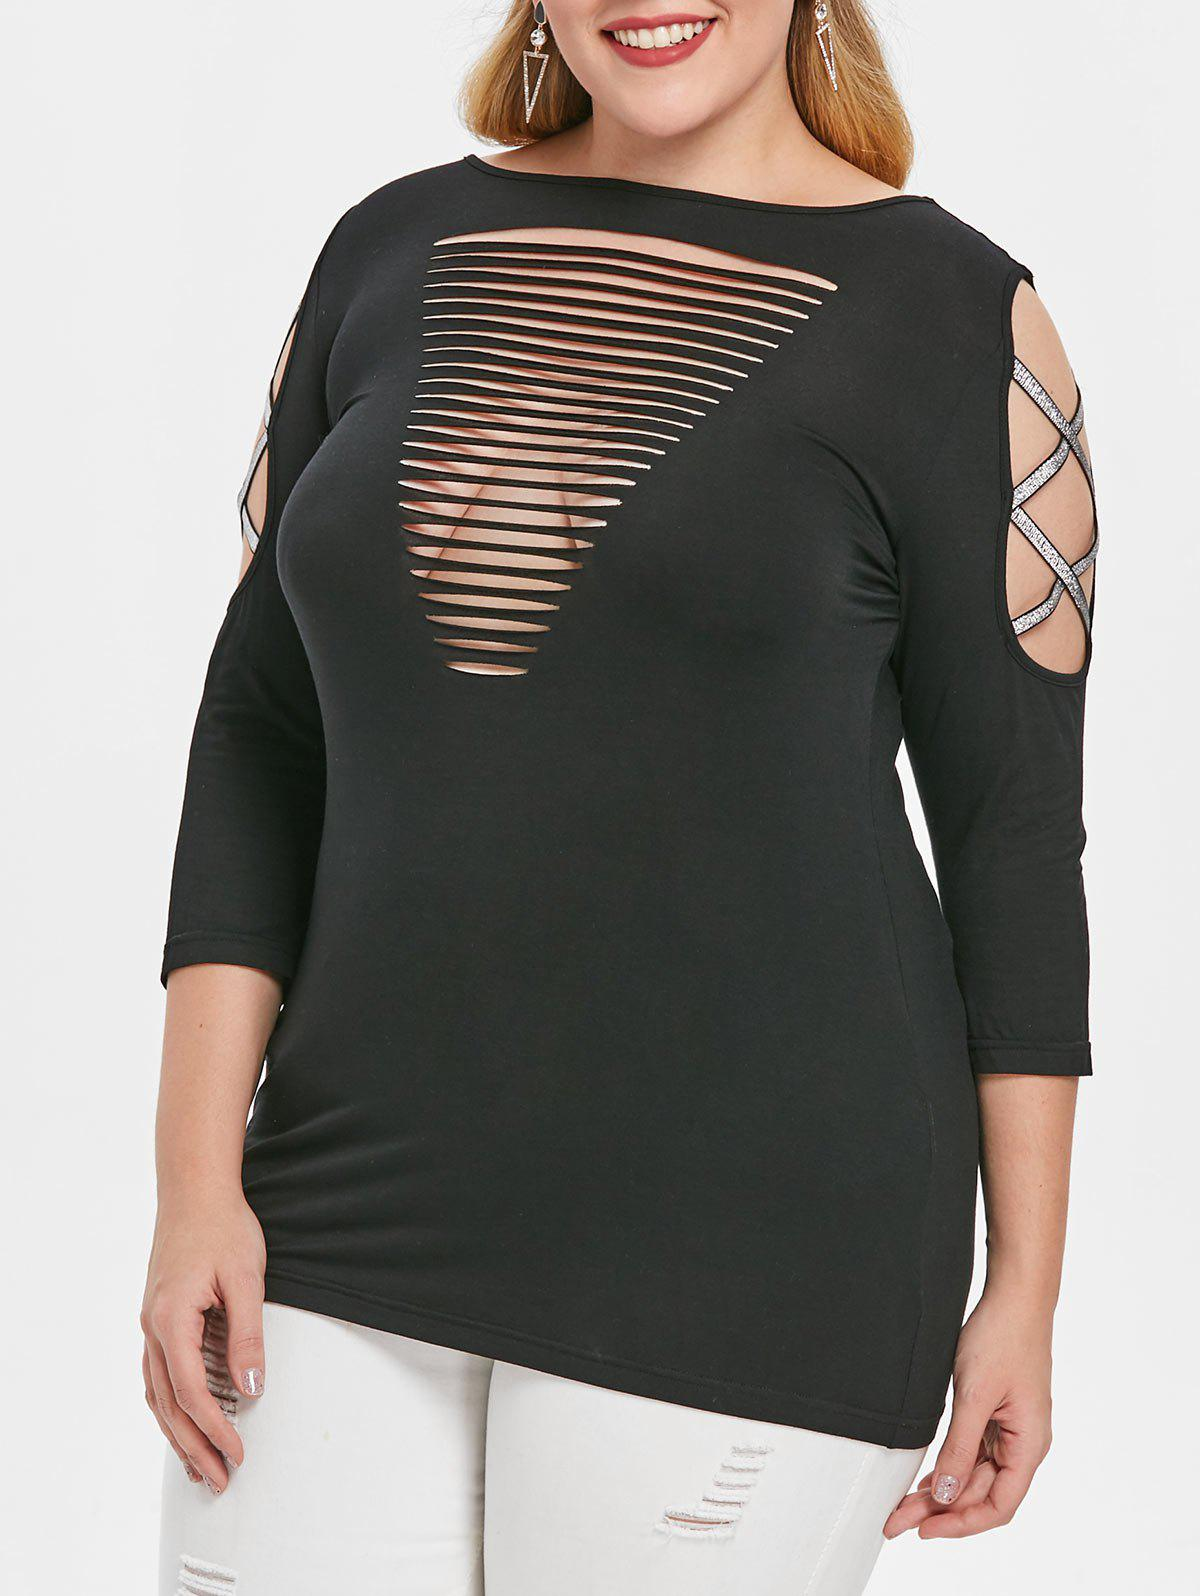 Shop Plus Size Cut Out Criss Cross Sleeve T-shirt